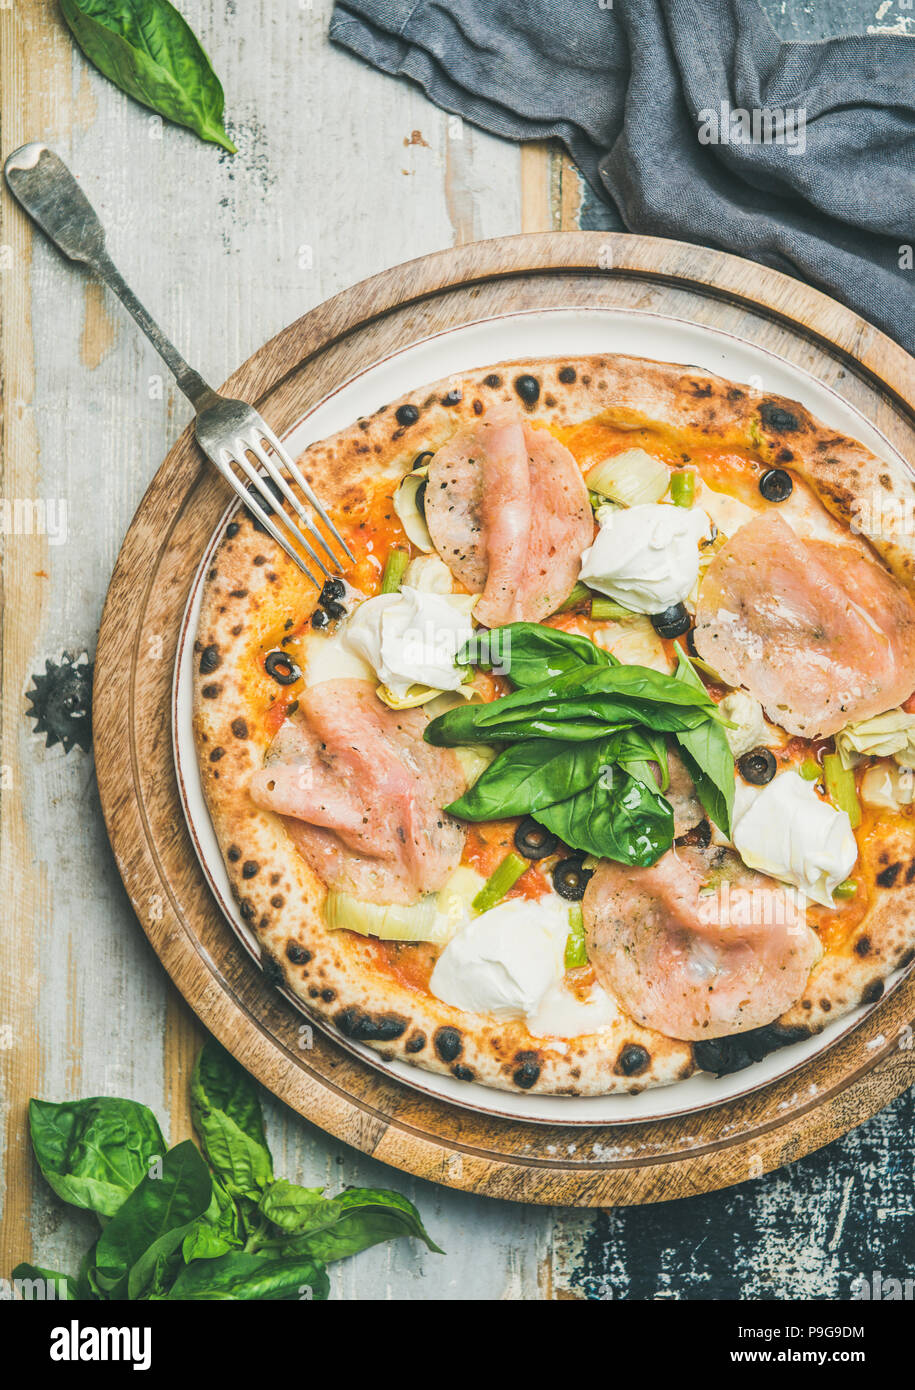 Freshly baked pizza with ham, artichokes, cheese and basil - Stock Image